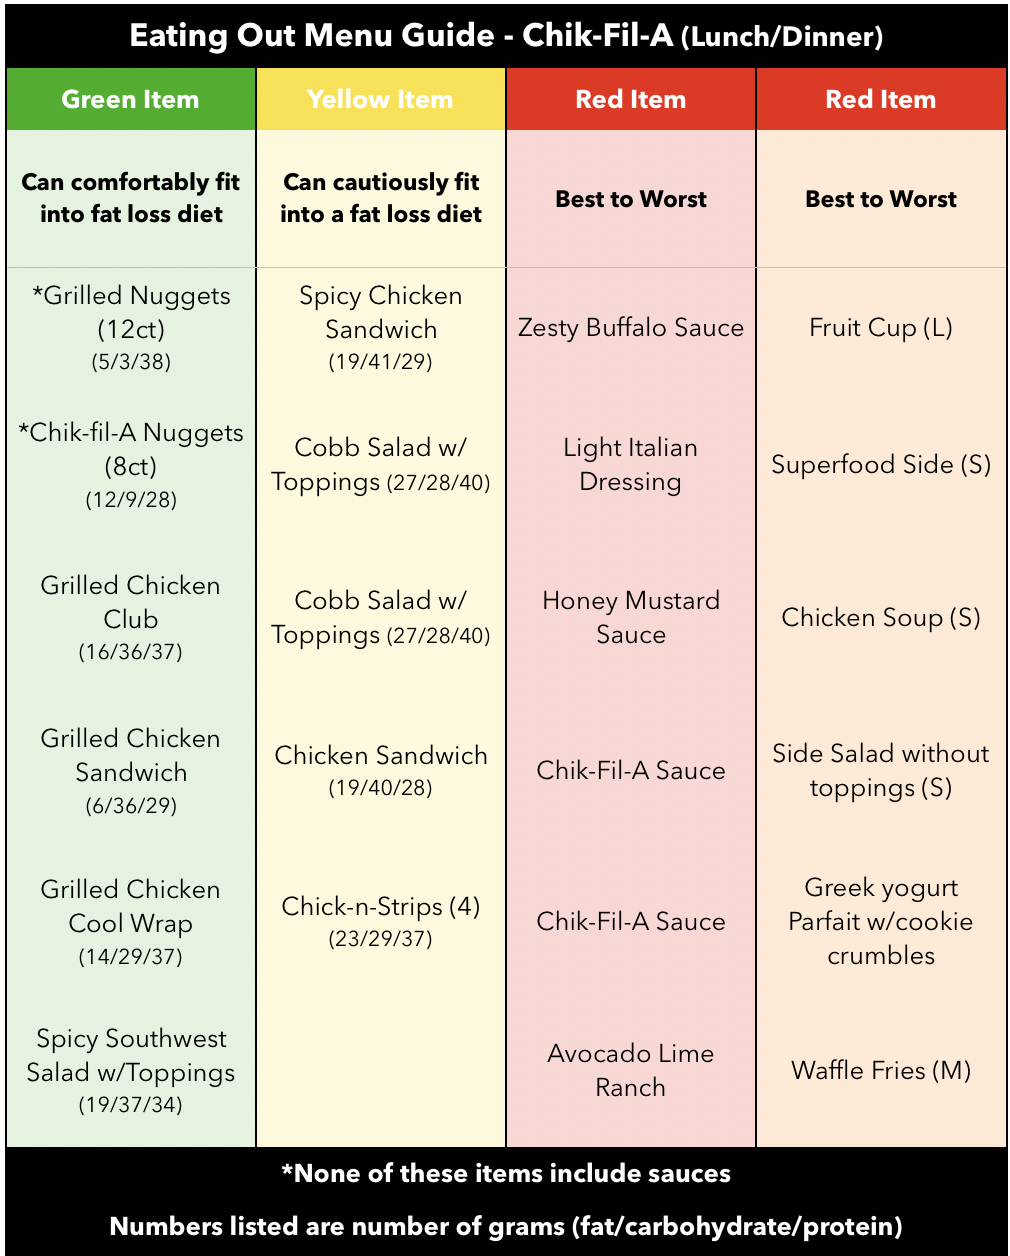 CFA-Lunch:Dinner Final.png